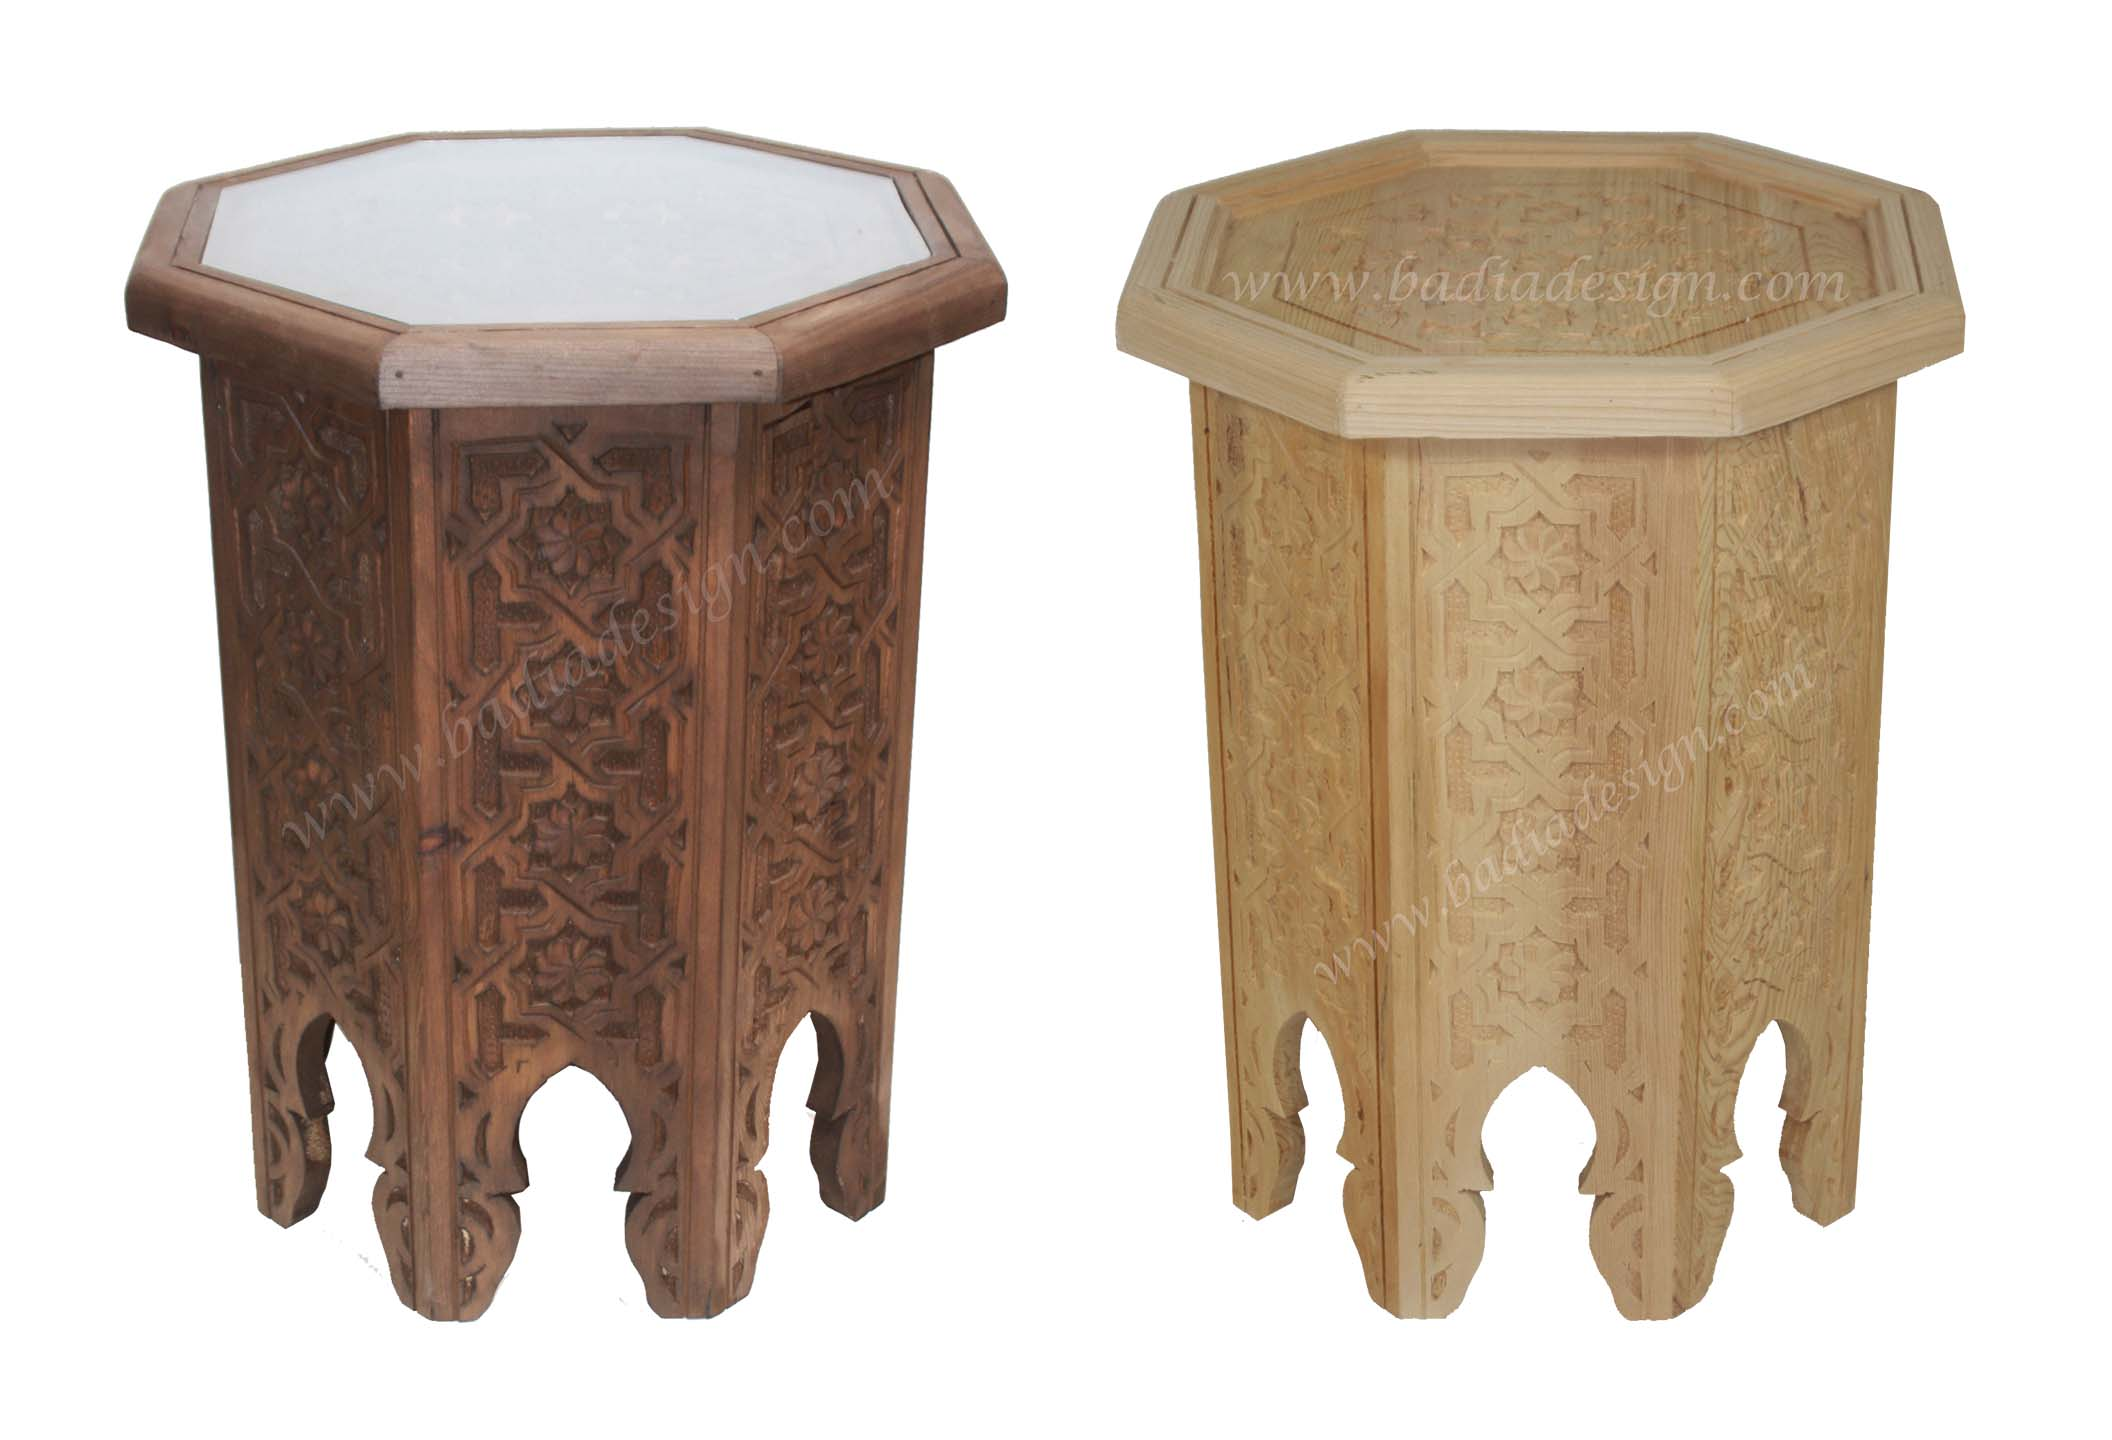 moroccan-unstained-side-table-cw-st044.jpg